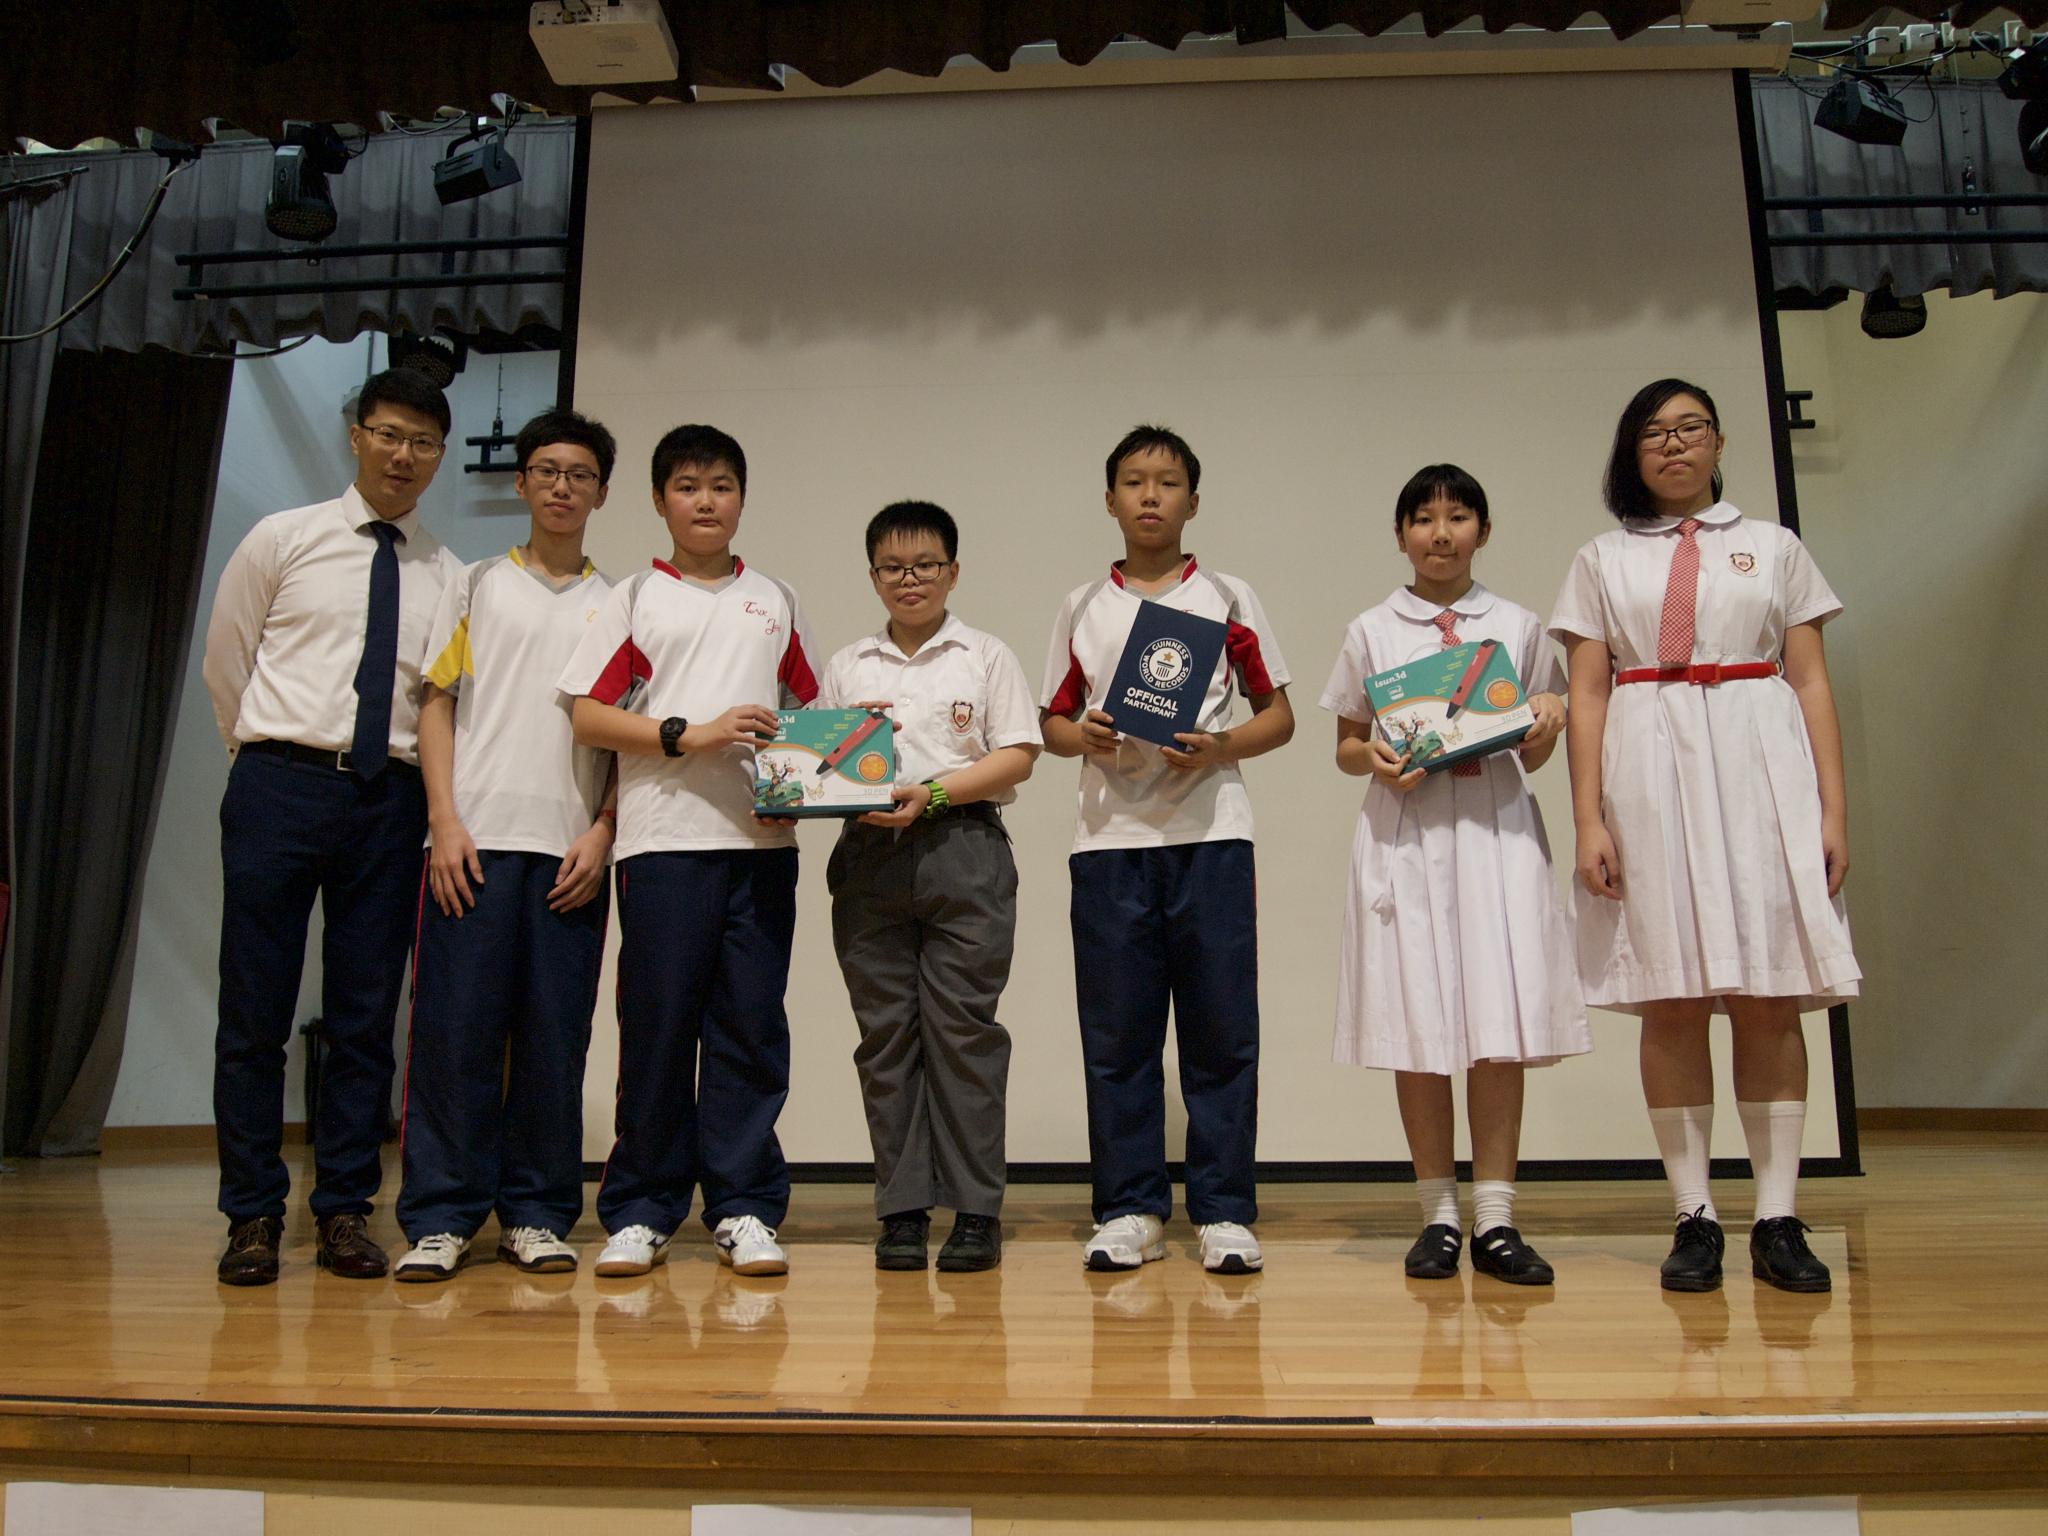 Team A were awarded the 3D printing pens and the certificate of the Guinness World Record by our Principal.